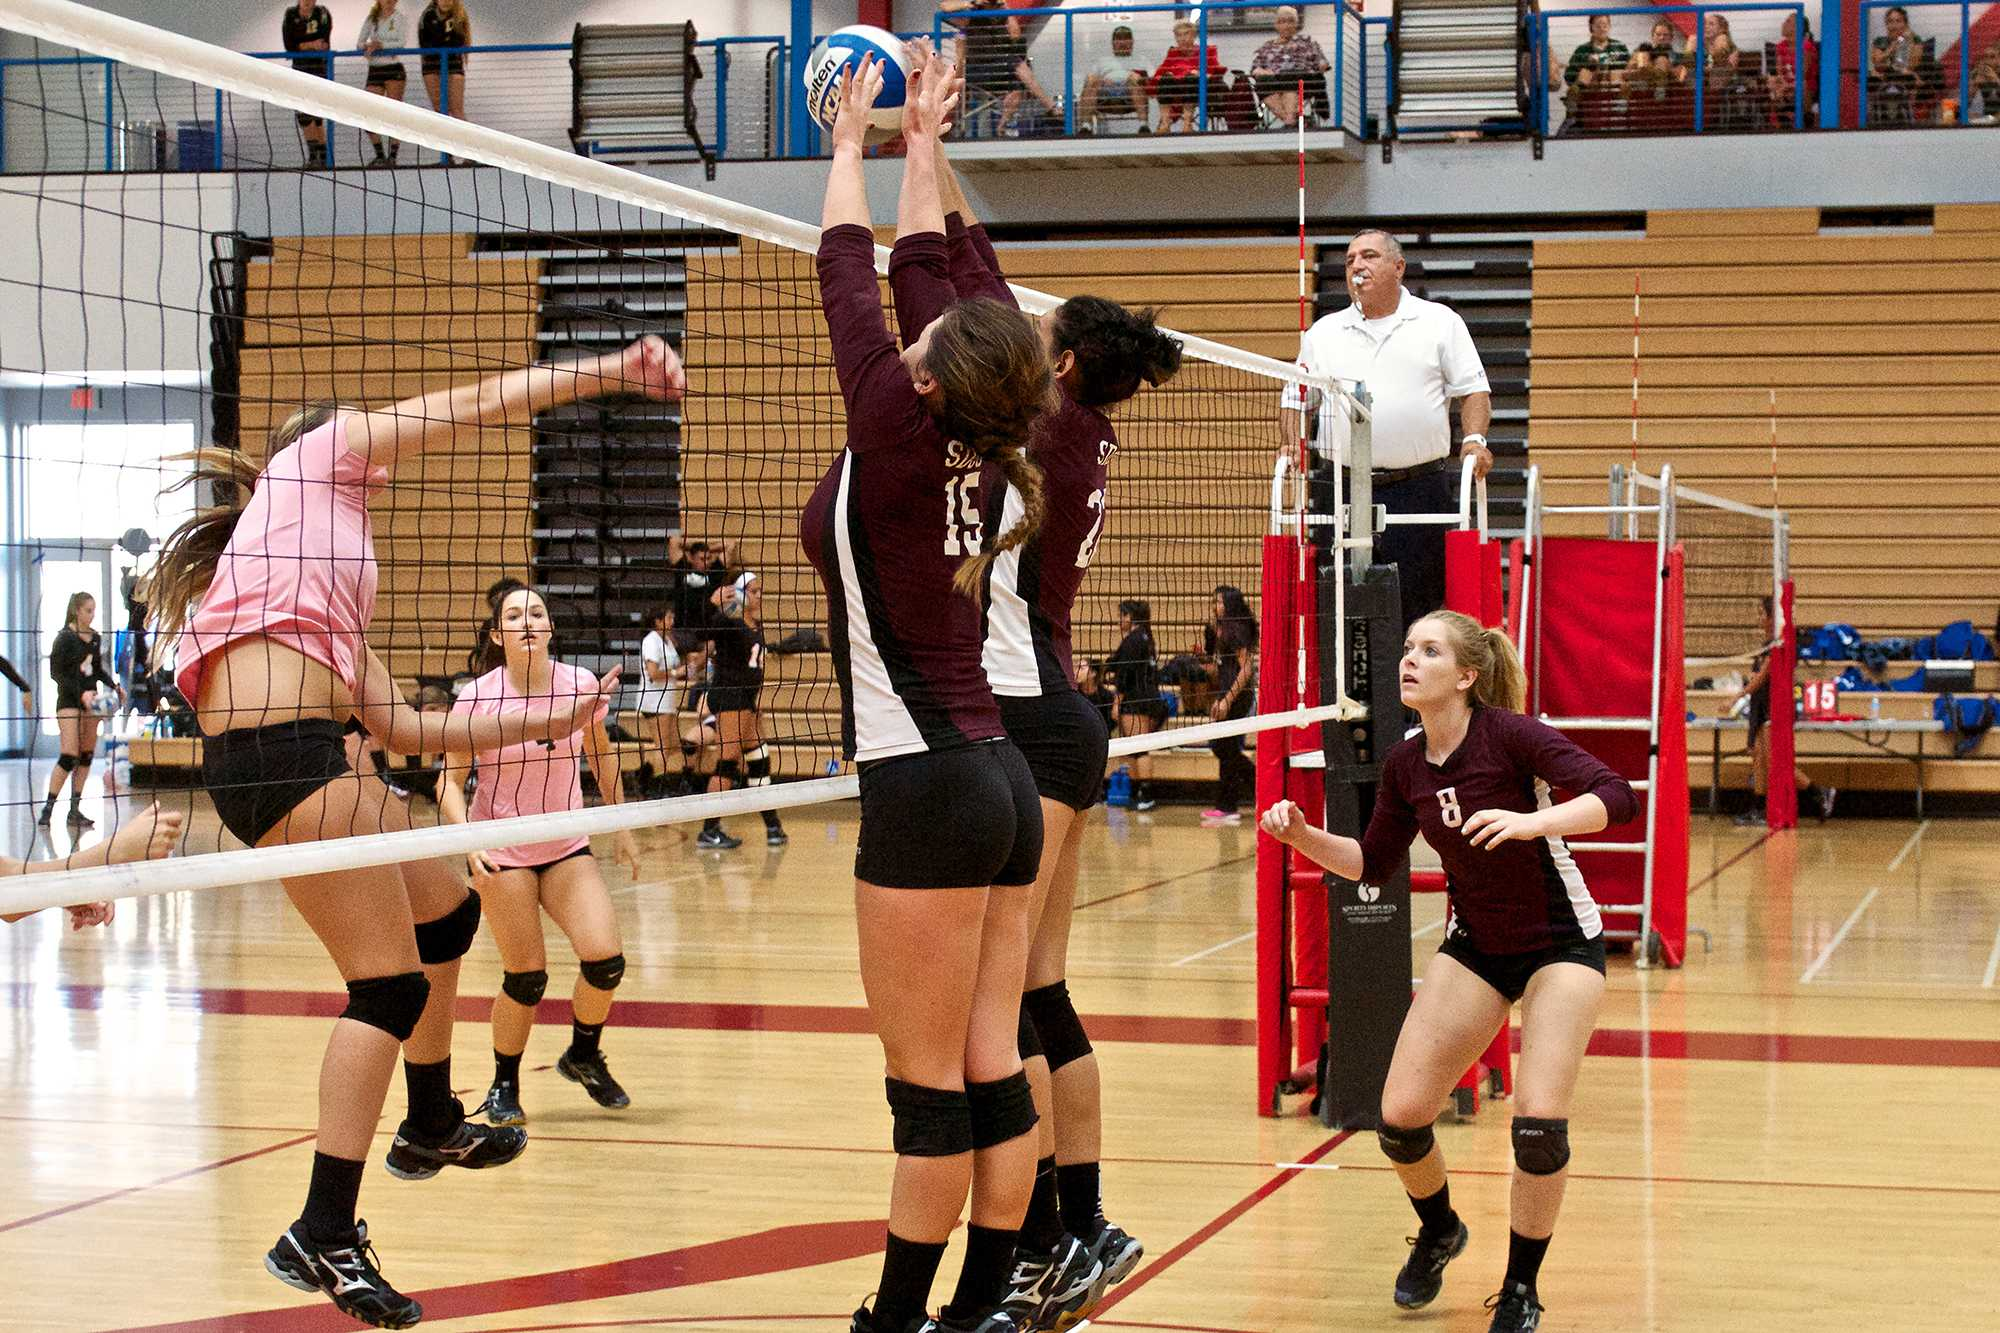 Sophomores Lisette Kelly (#15) and Mia Torres (#22)  block  the ball from  an opponent from College of the Desert during the San Diego City College tournament on Sept. 27 where they finished second  overall out of 13 teams. Photo credit: Troy Orem